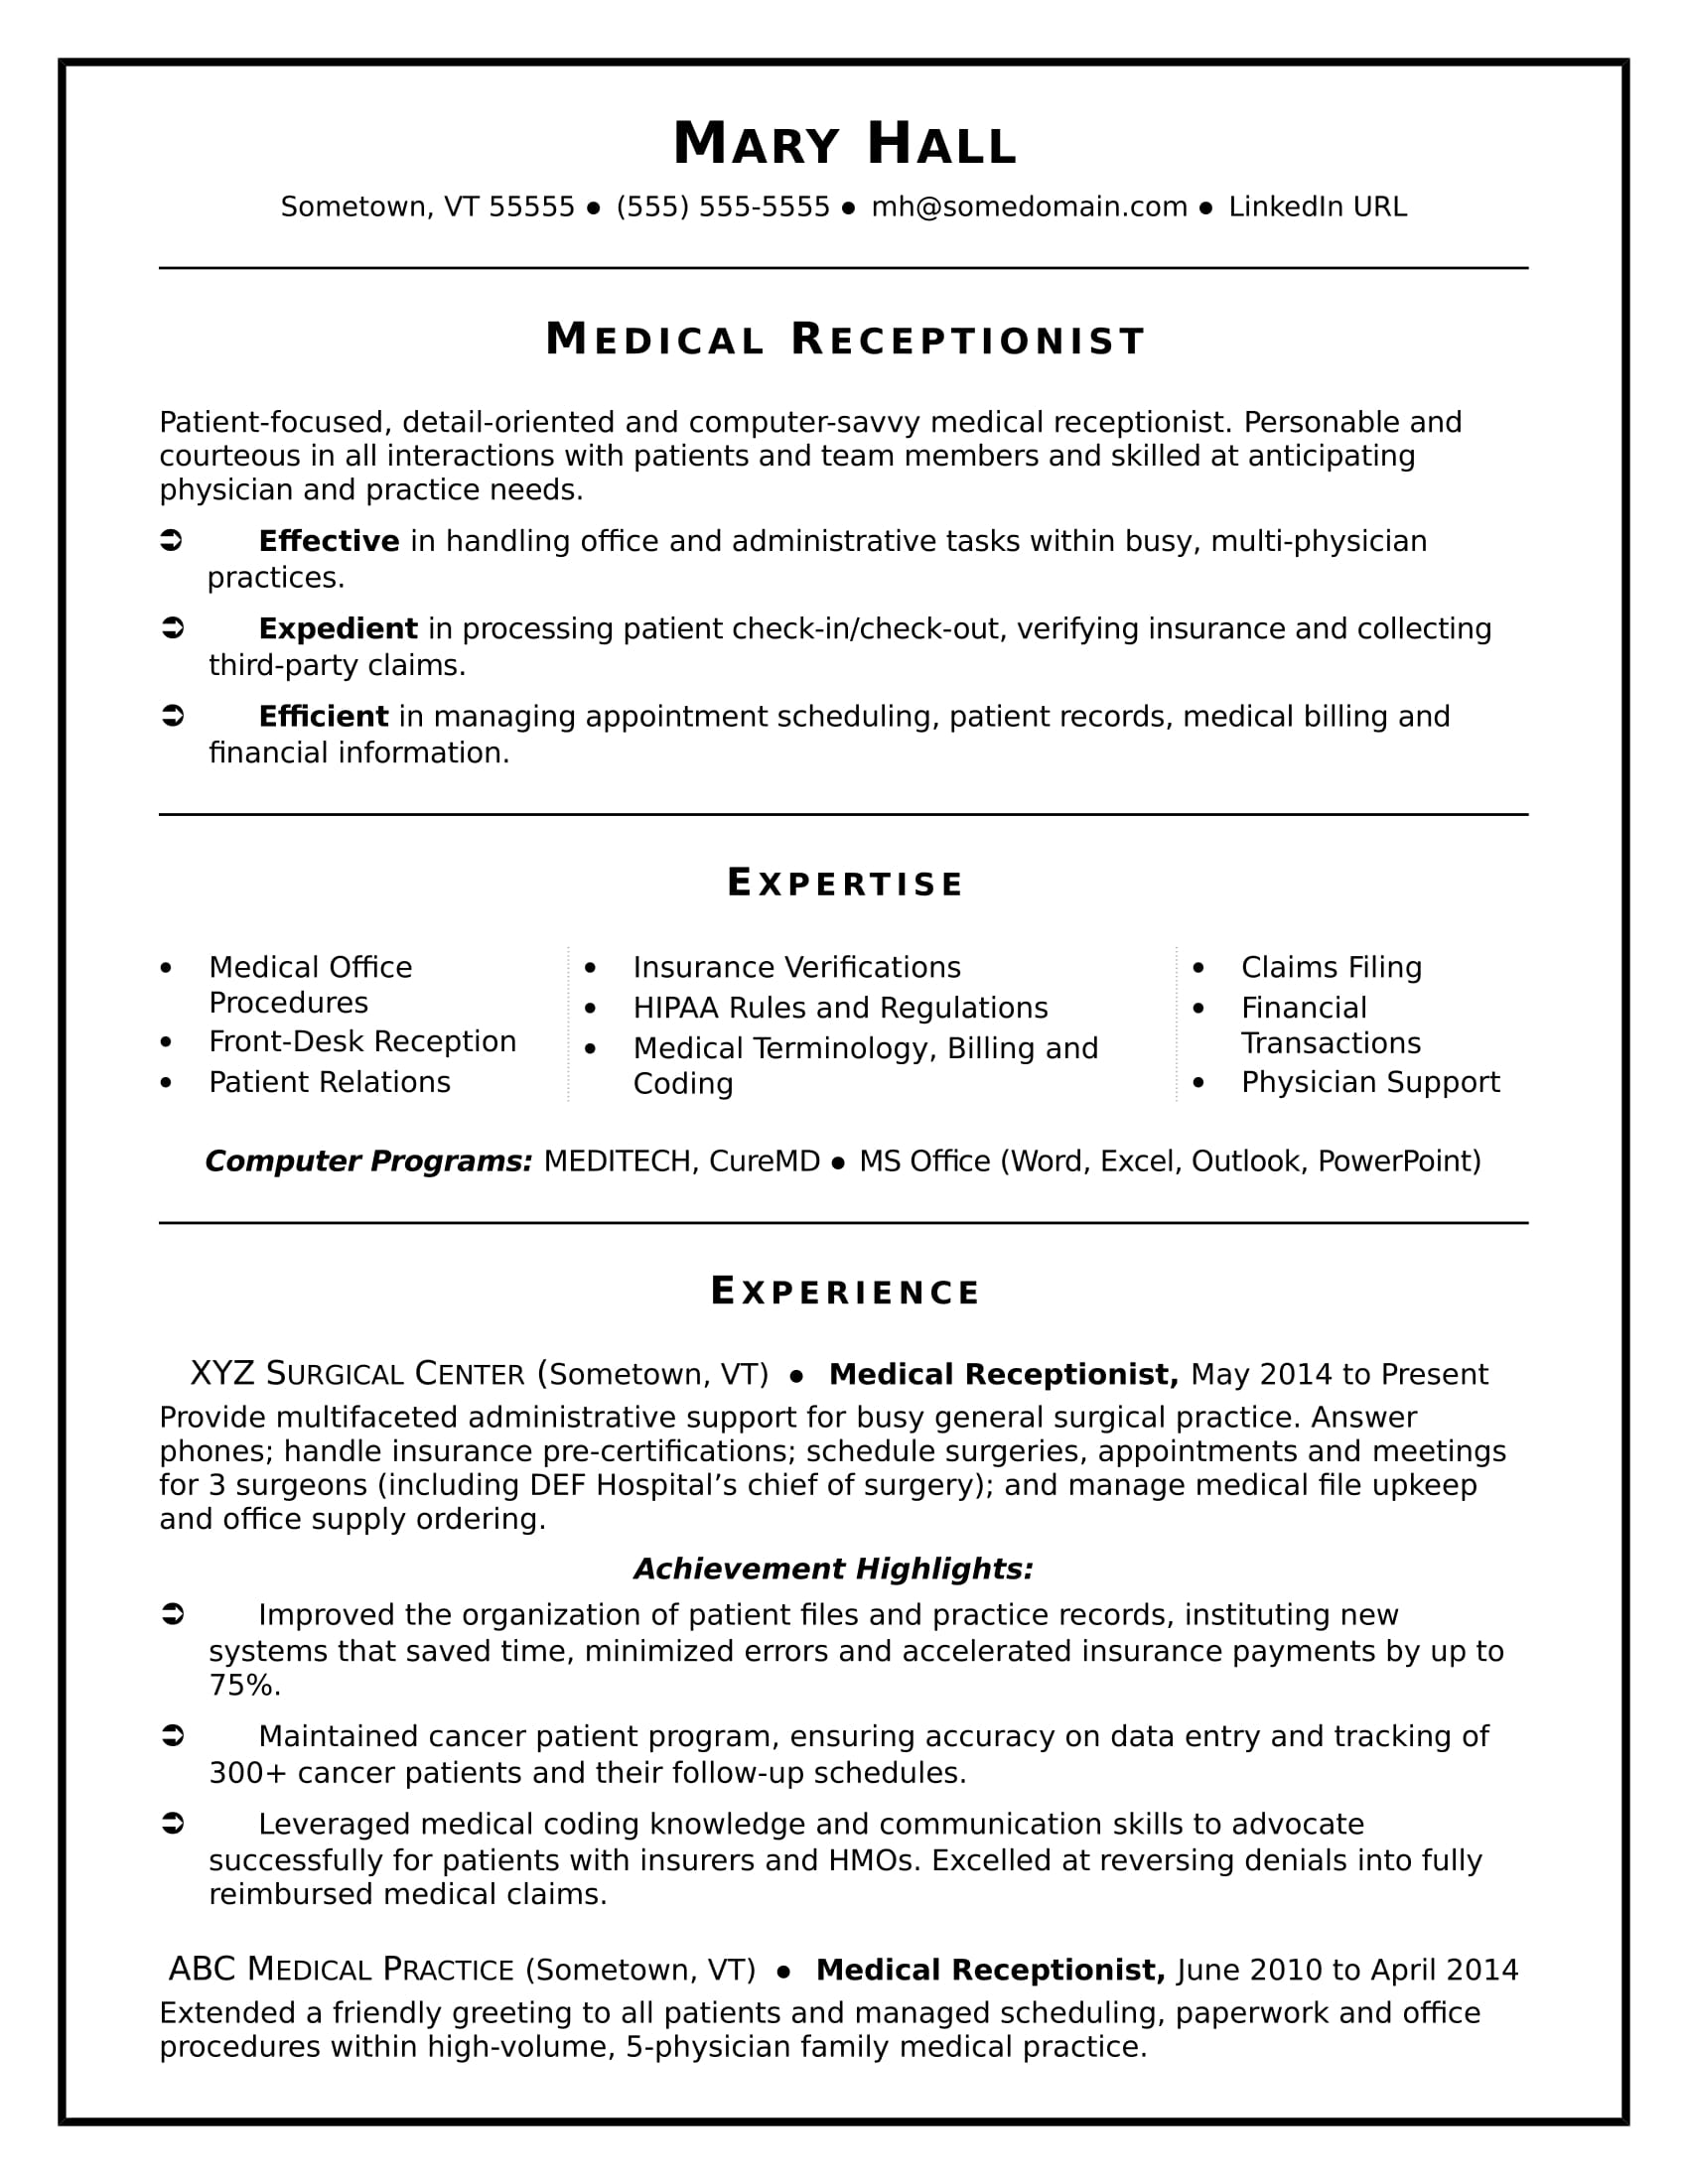 Lovely Medical Receptionist Resume Sample Throughout Medical Receptionist Resume Sample